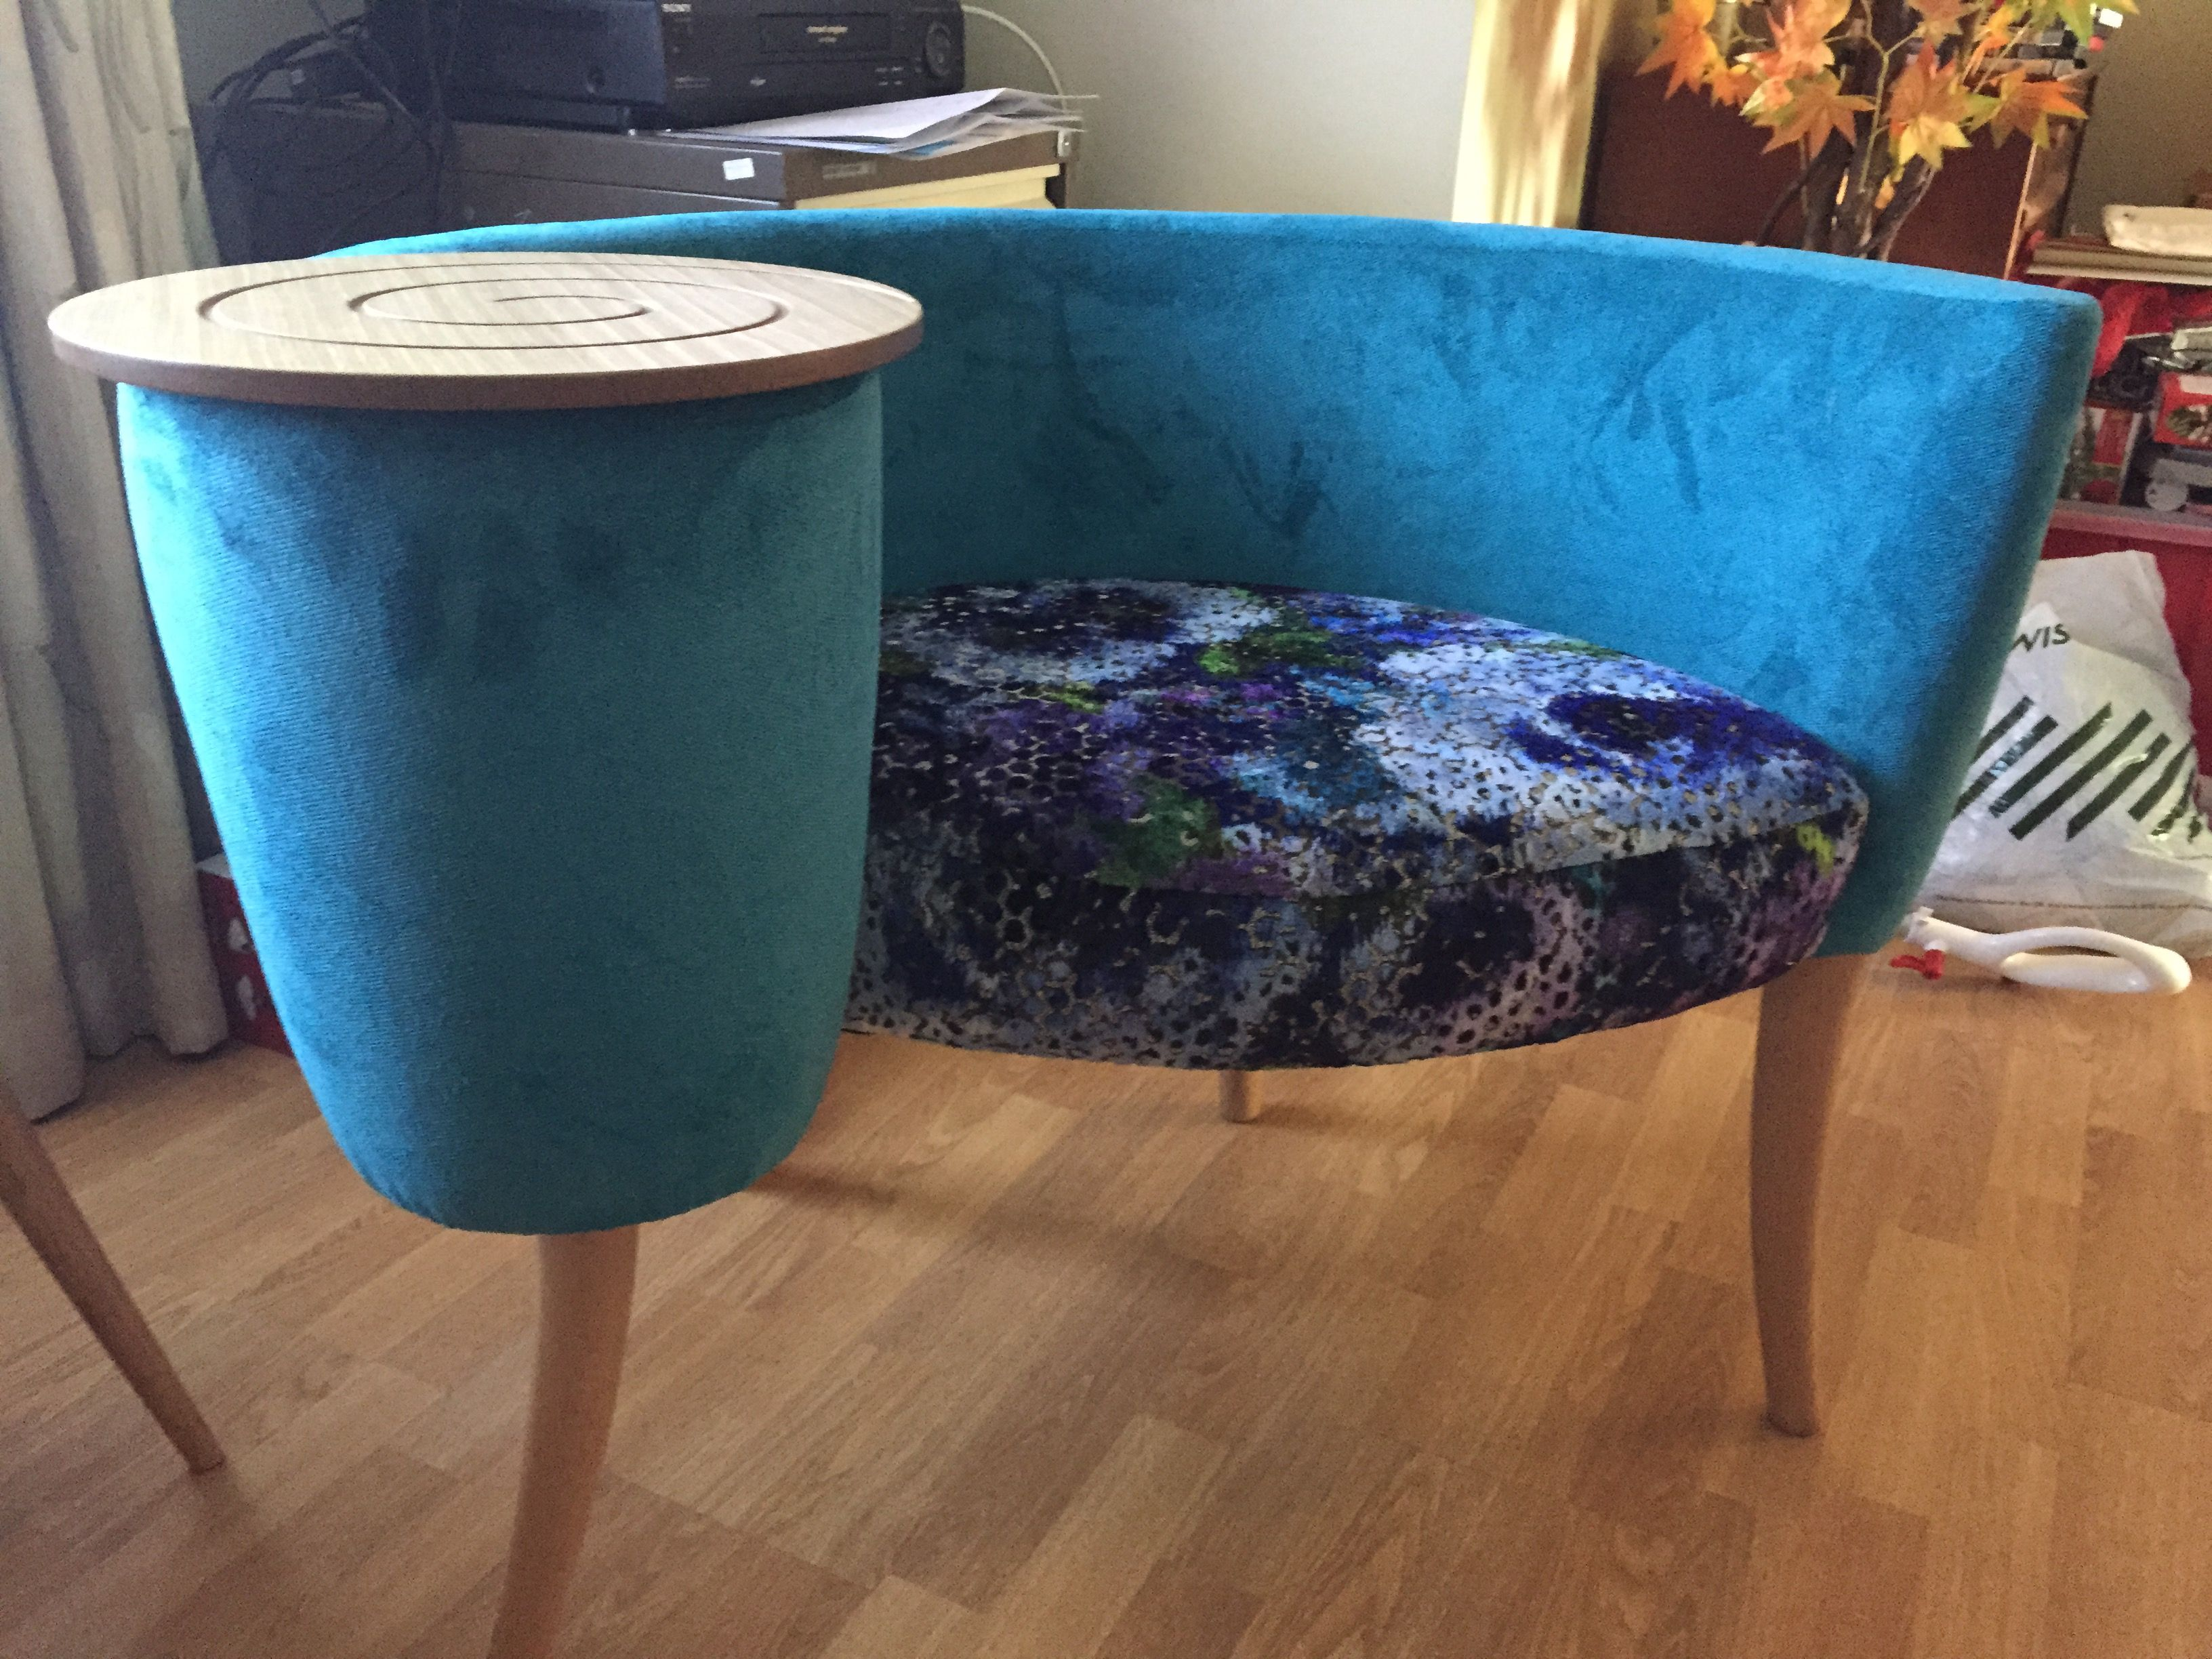 Statement Chair With Integrated Table This Is In Designers Guild Mattiazzo Cobalt With J Brown Dakota Teal Statement Chairs Chair Designers Guild